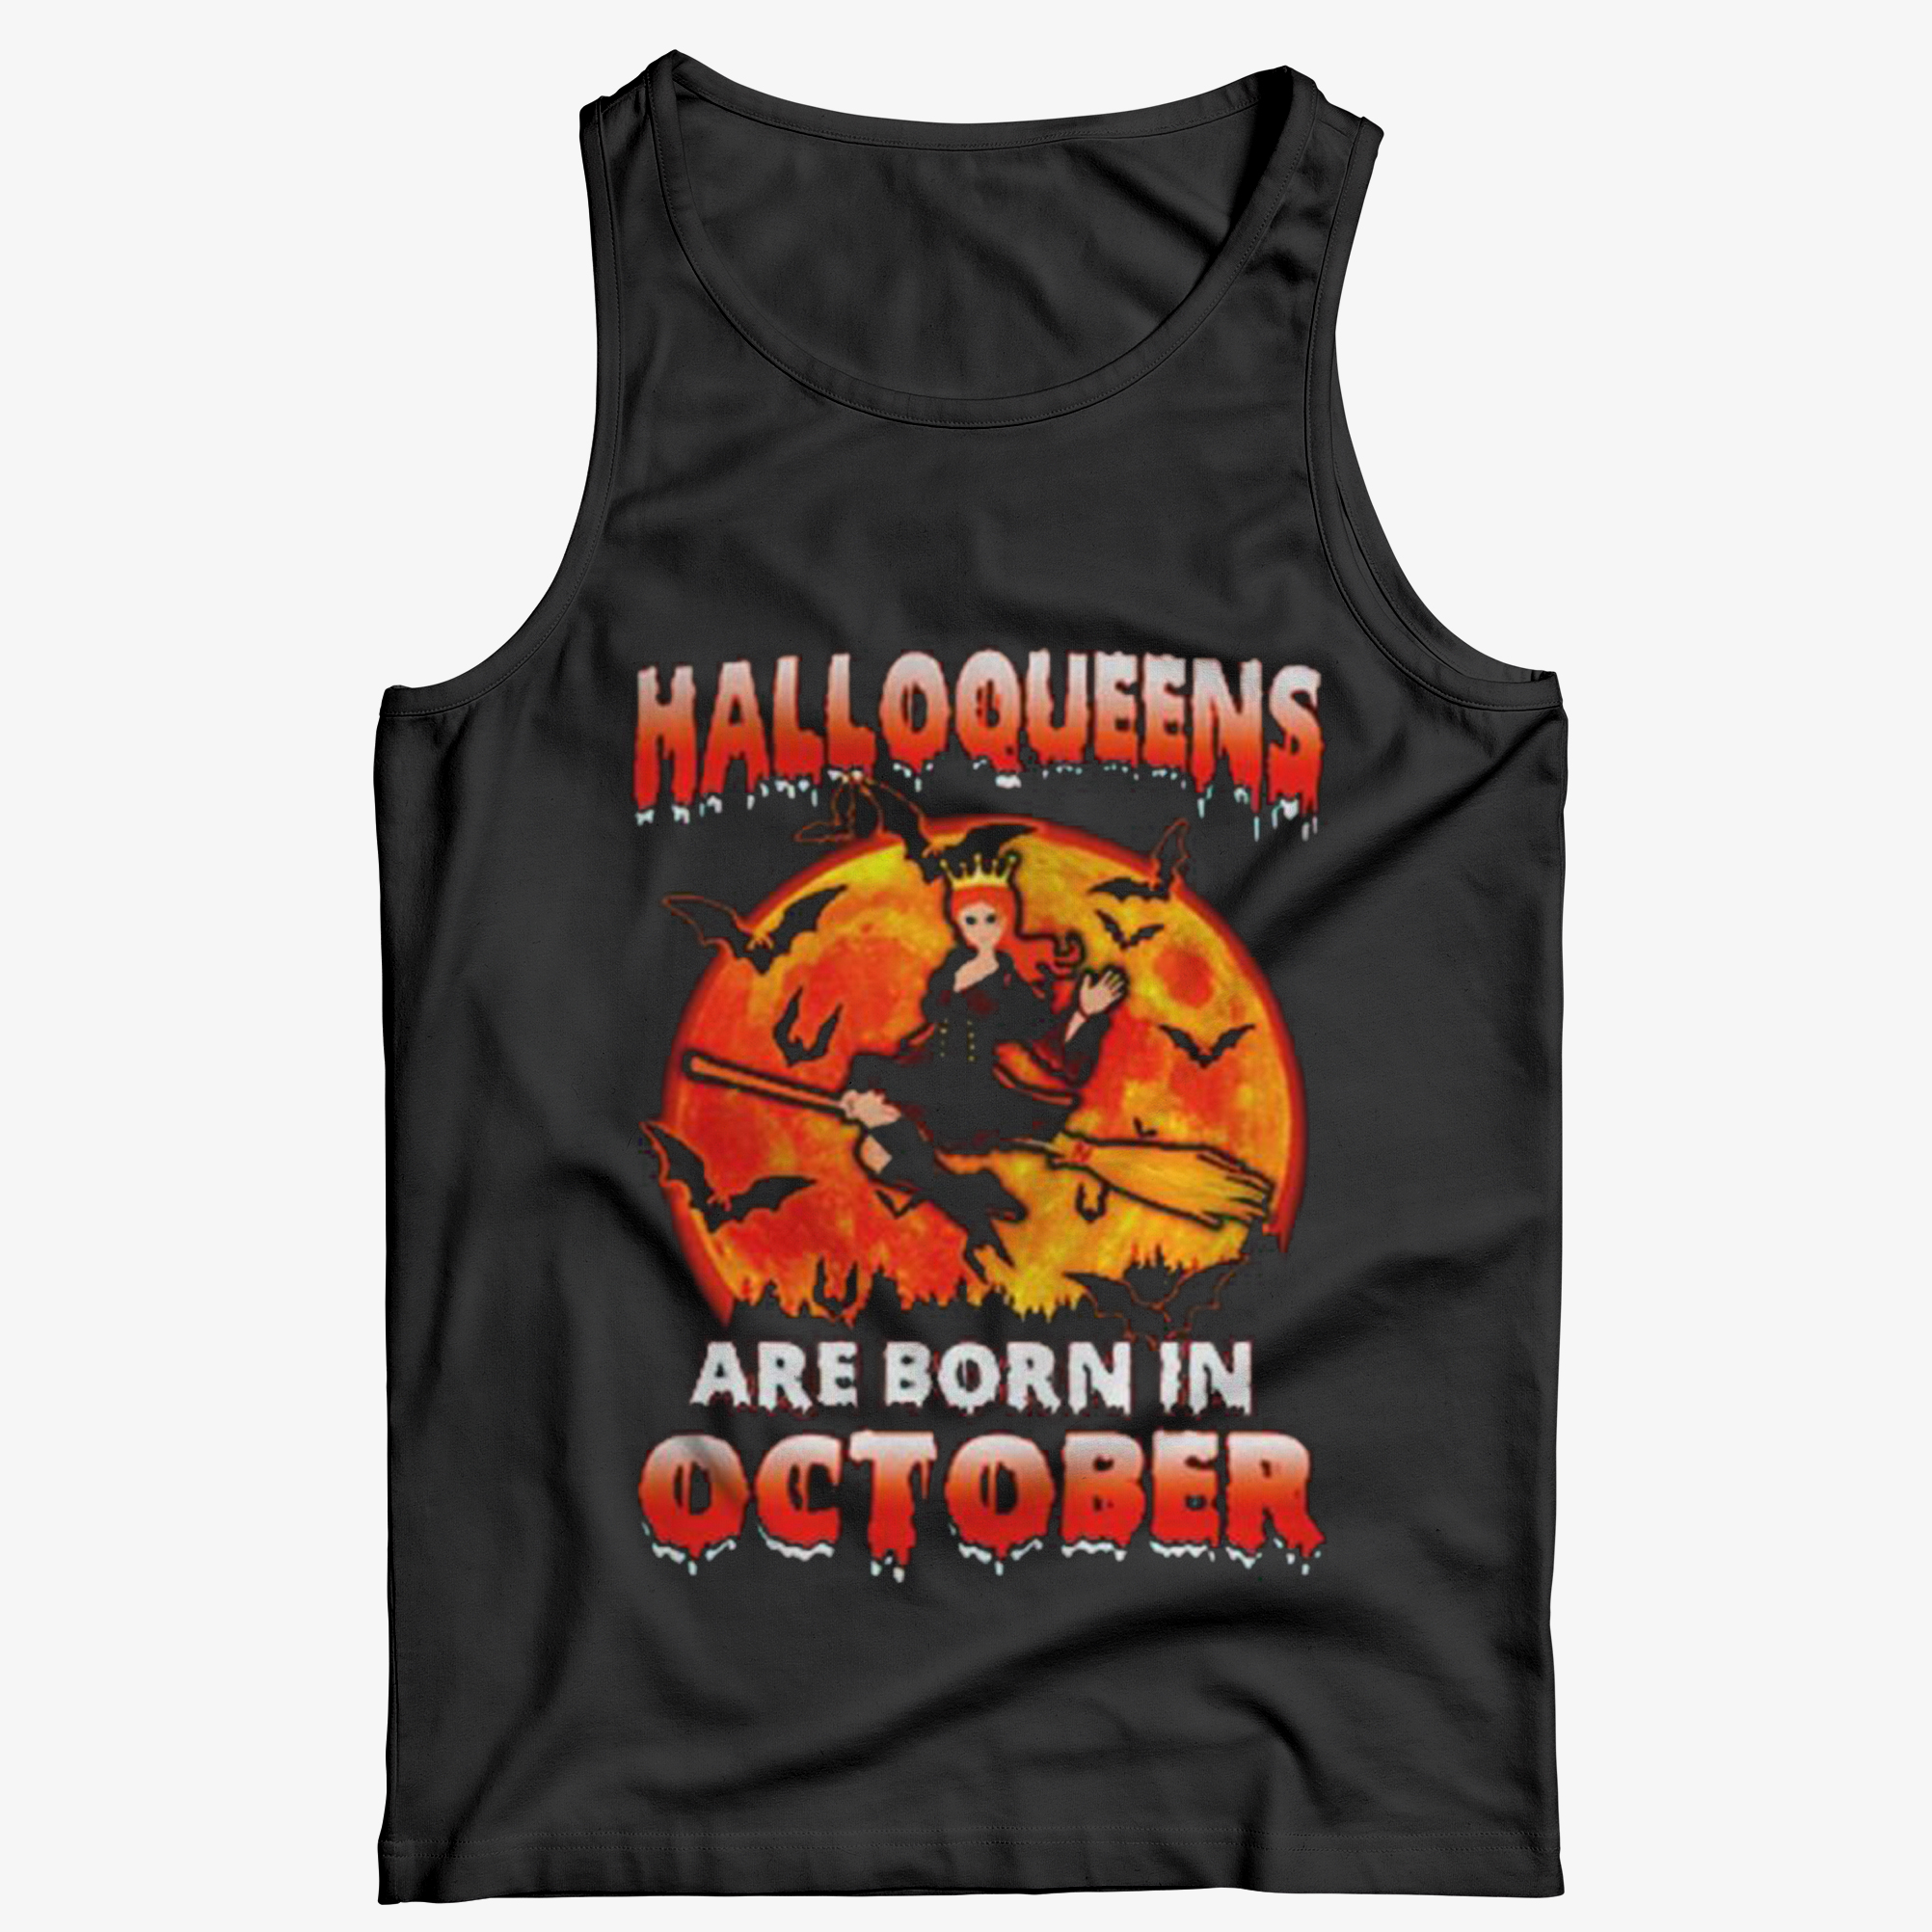 Halloqueens Are Born In October Tank Top